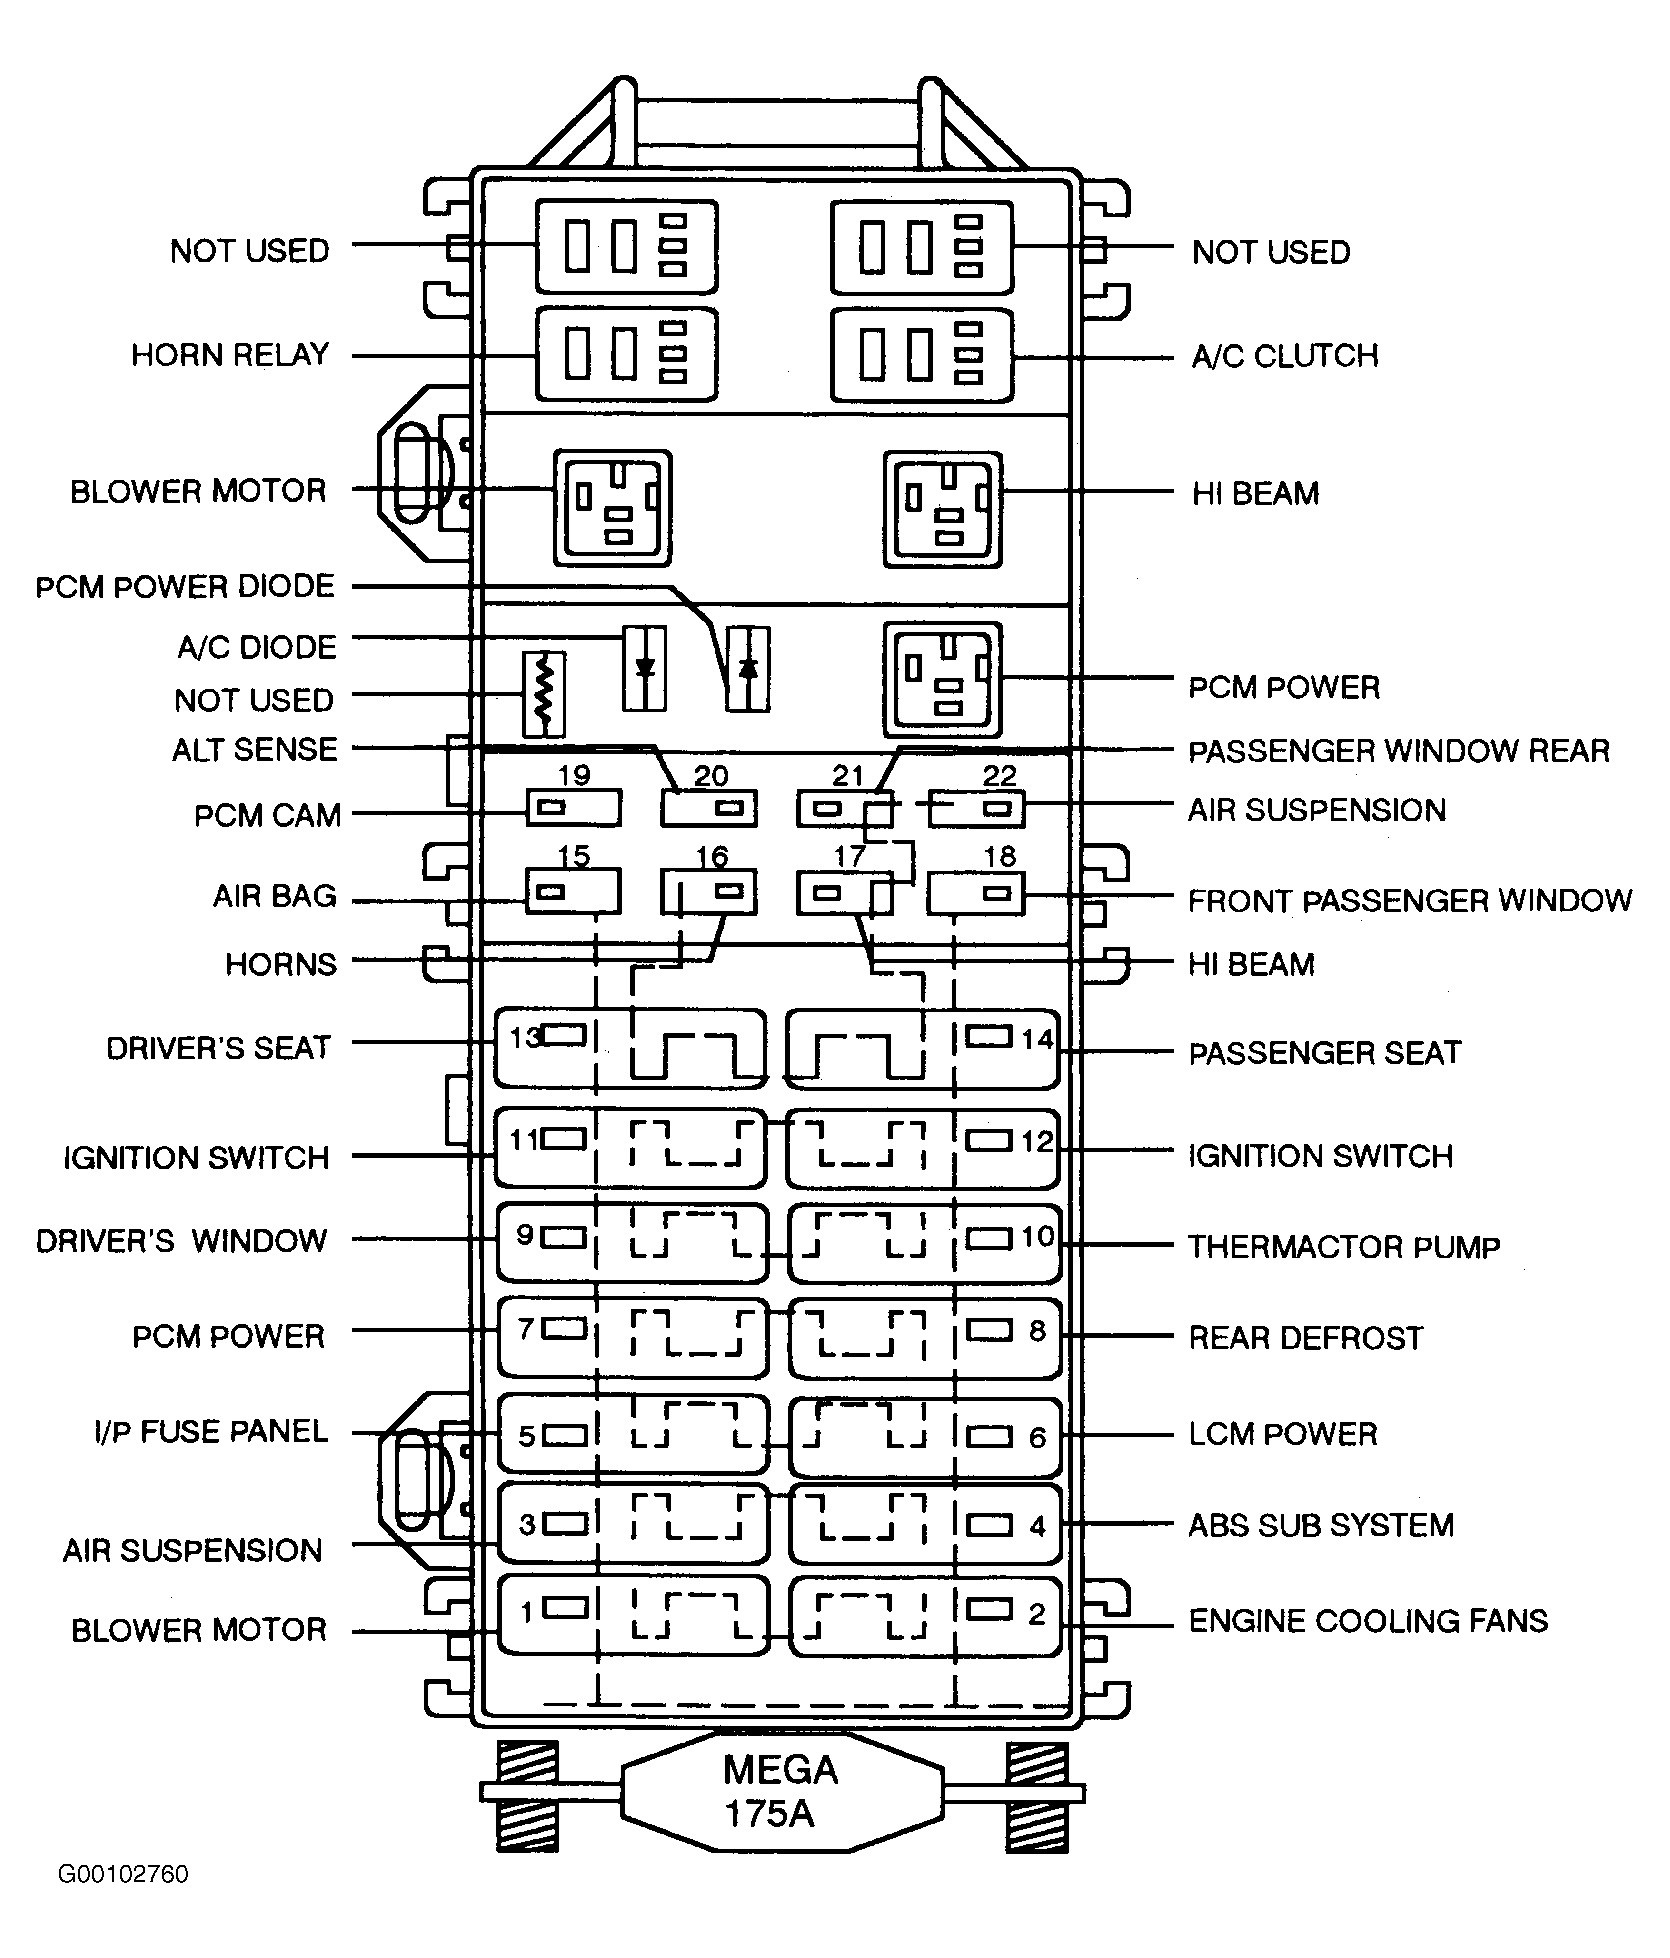 medium resolution of 1996 mack fuse box diagram wiring library1996 mack fuse box diagram